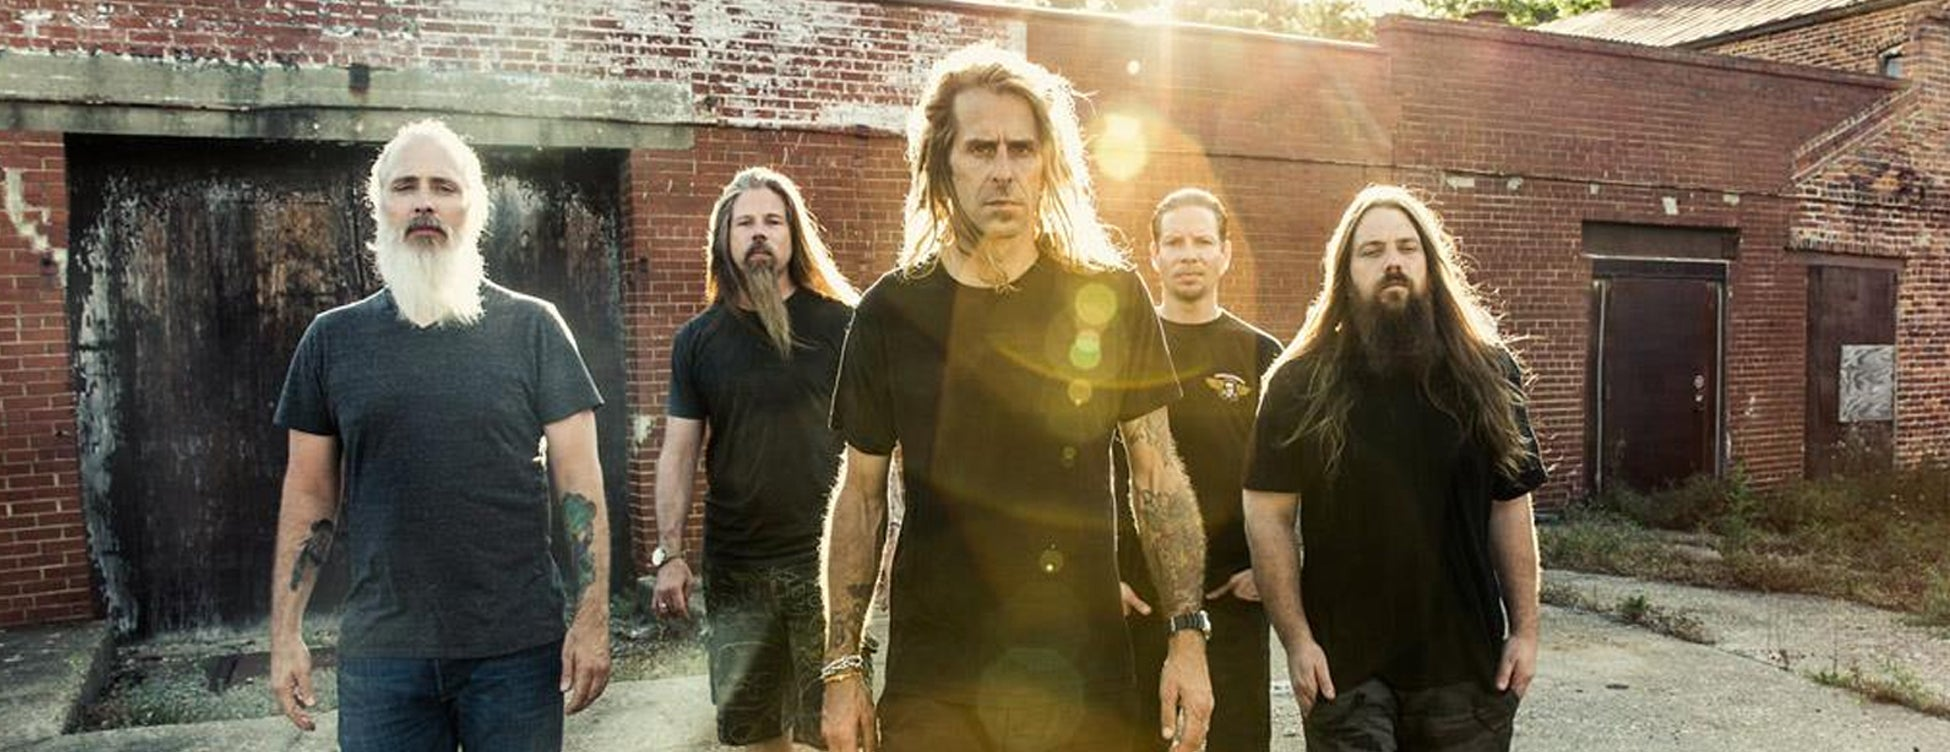 lamb of god_1950.jpg